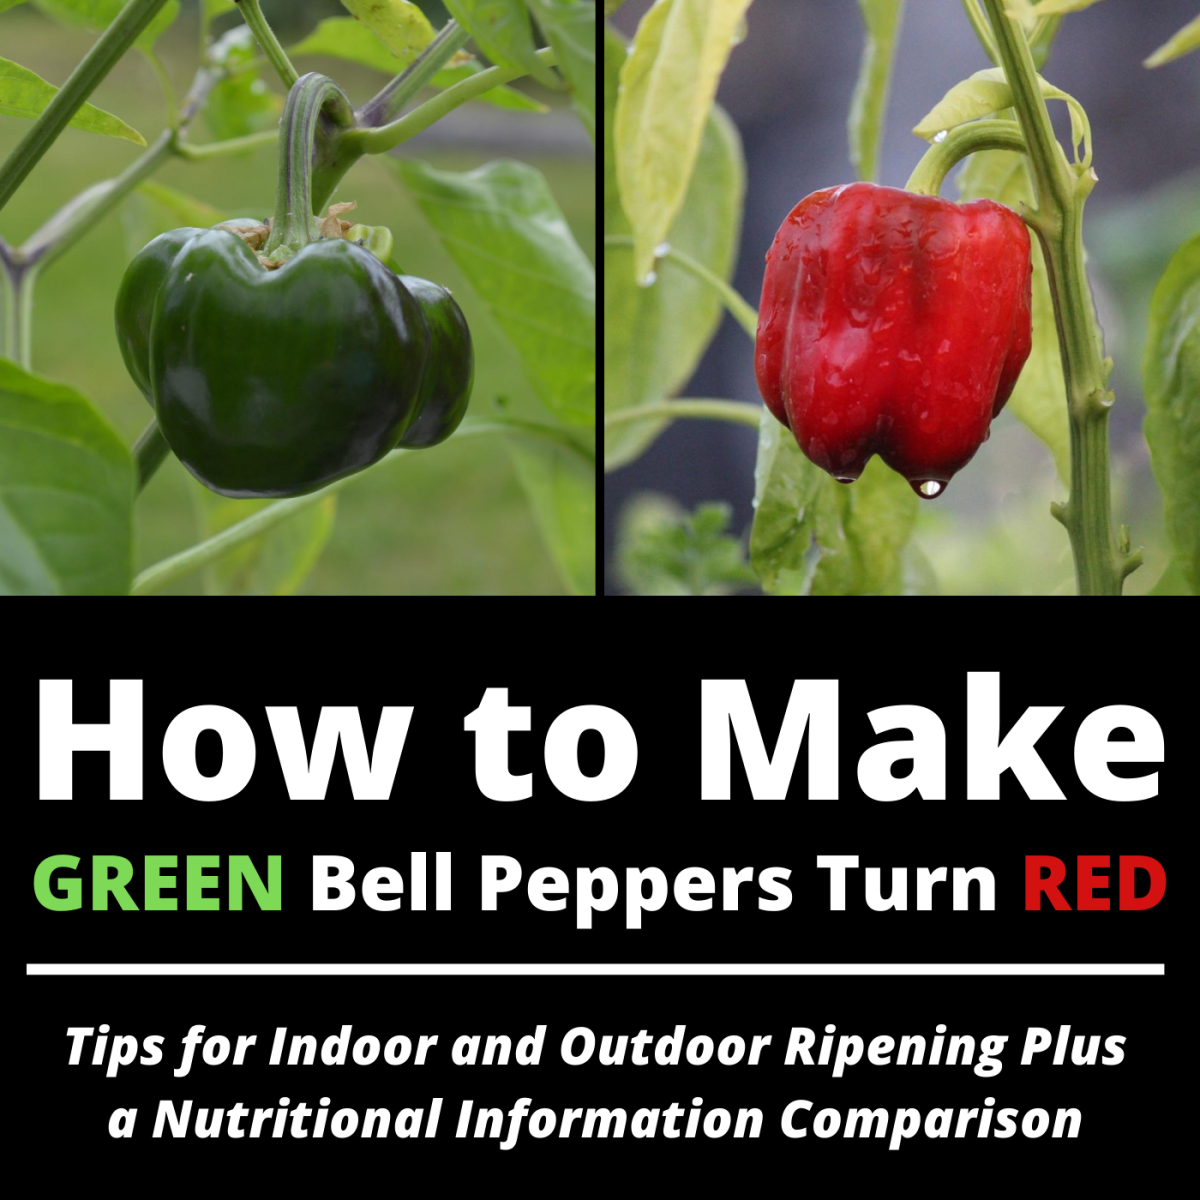 Want those green peppers to ripen to red? Learn how long it takes and what you can do to help.